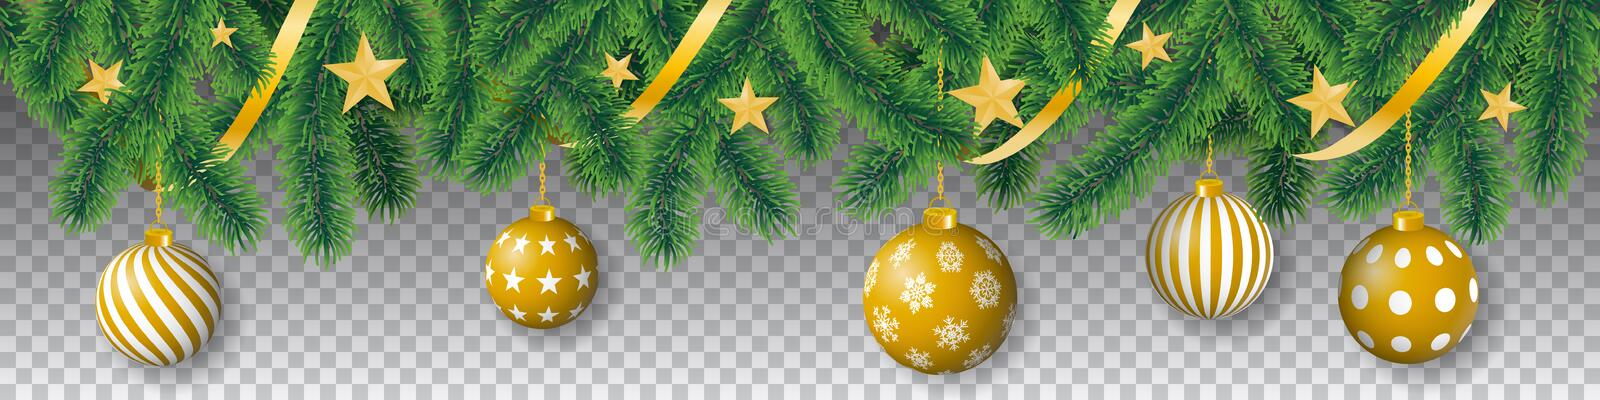 Seamless vector coniferous tree branches with needle leaves, stars, ribbons and hanging christmas bulbs on transparent background vector illustration